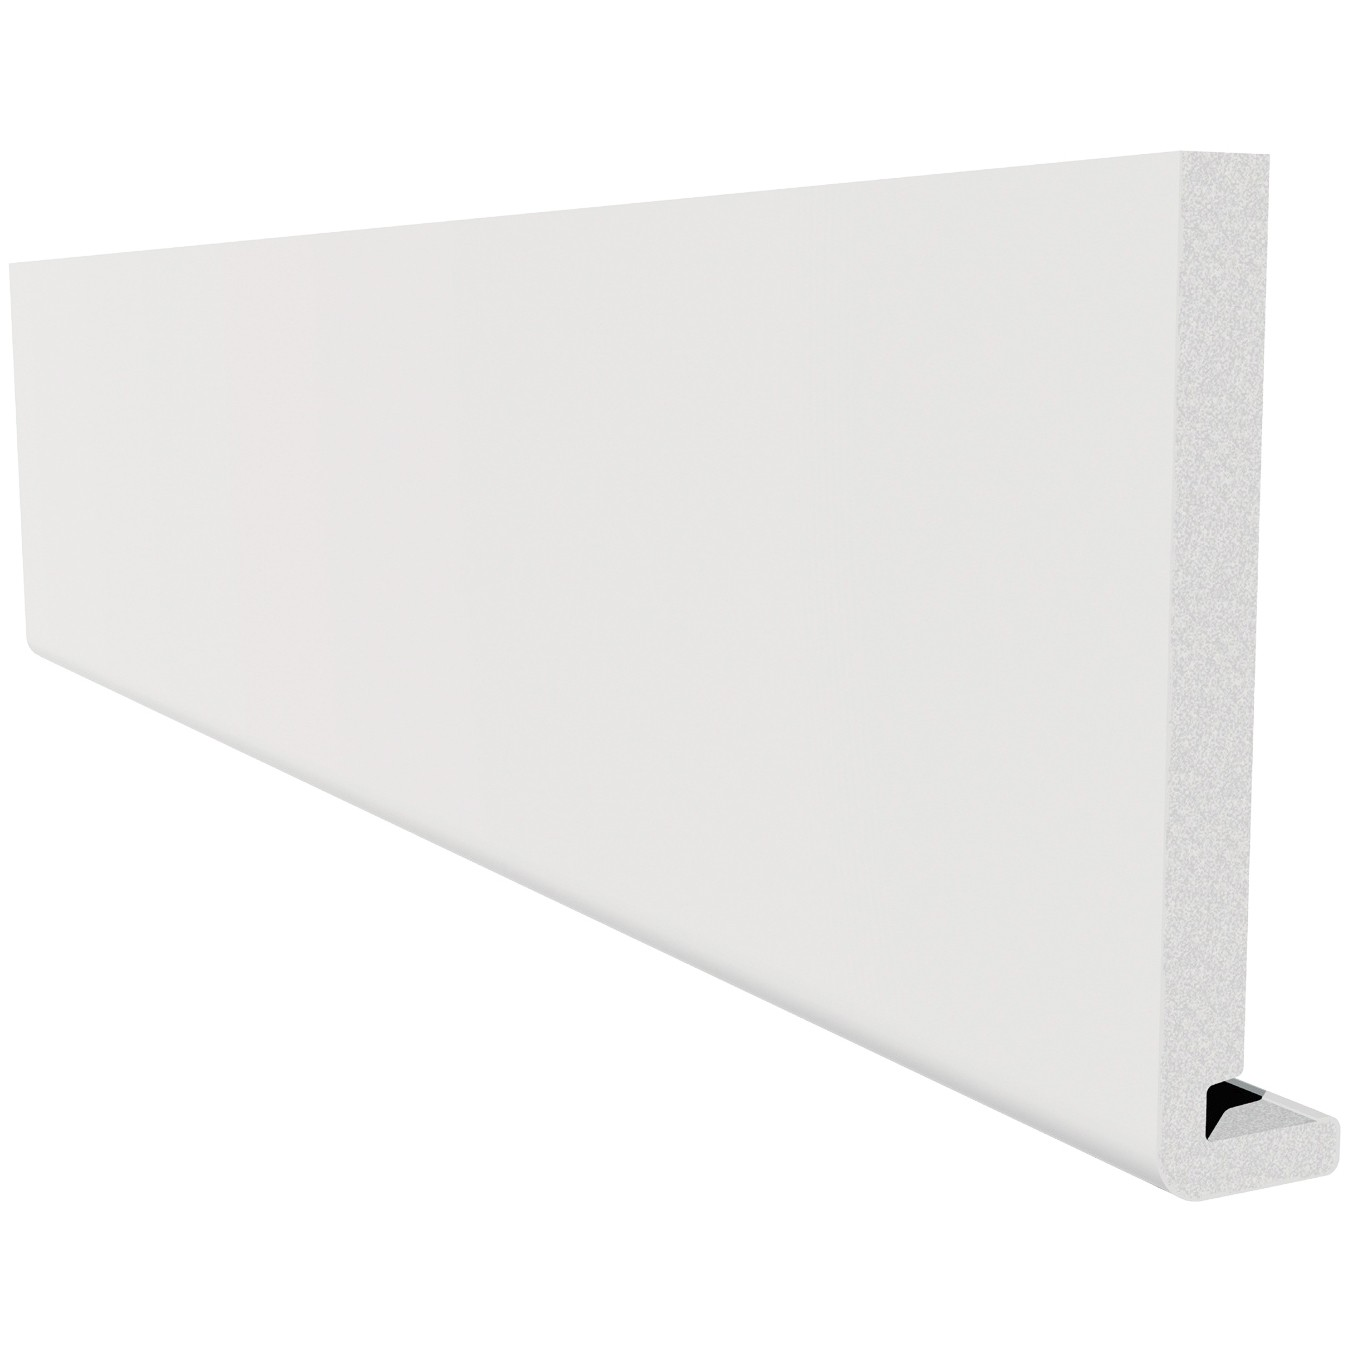 Freefoam Magnum Square Leg 18mm Fascia Board - White, 250mm, 2.5 metre